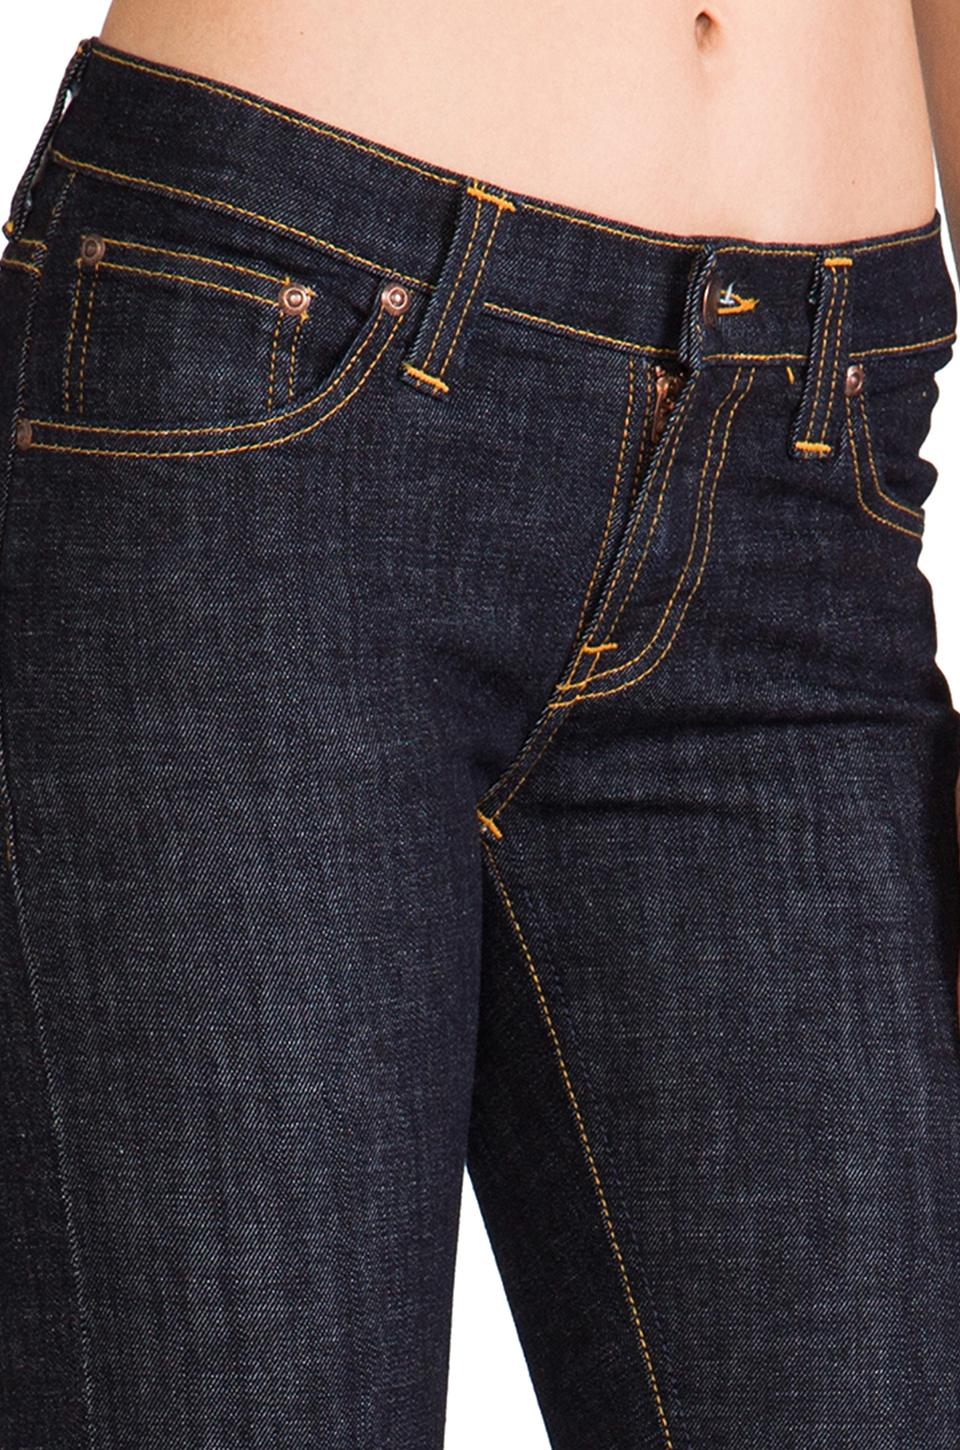 Nudie Jeans Tight Long John Skinny in Twill Rinsed